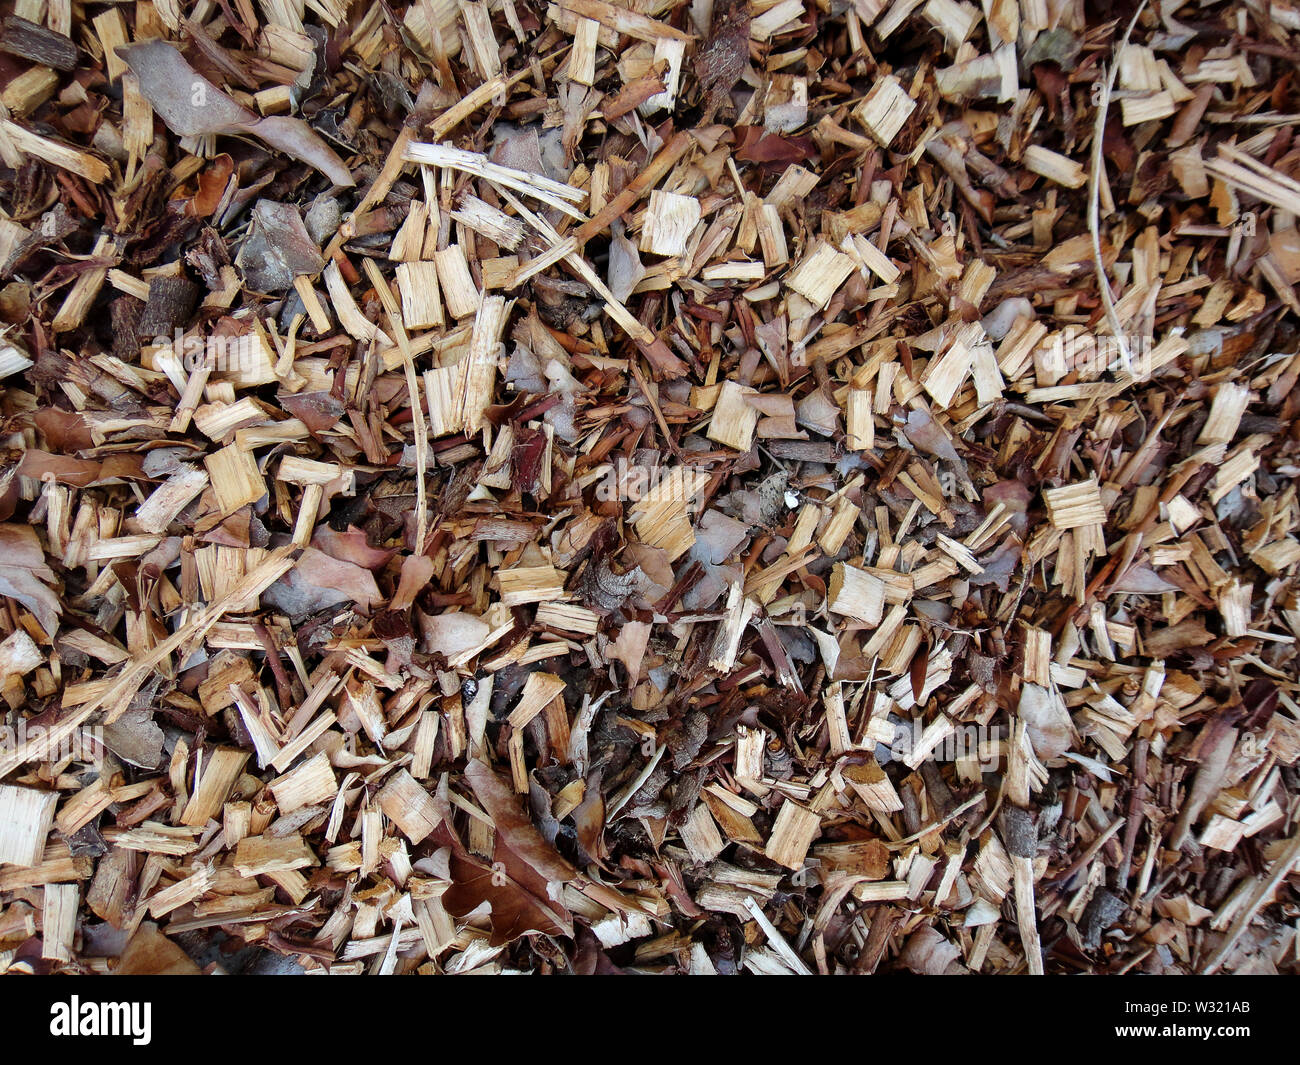 Woods small pieces macro background fine art in high quality prints - Stock Image